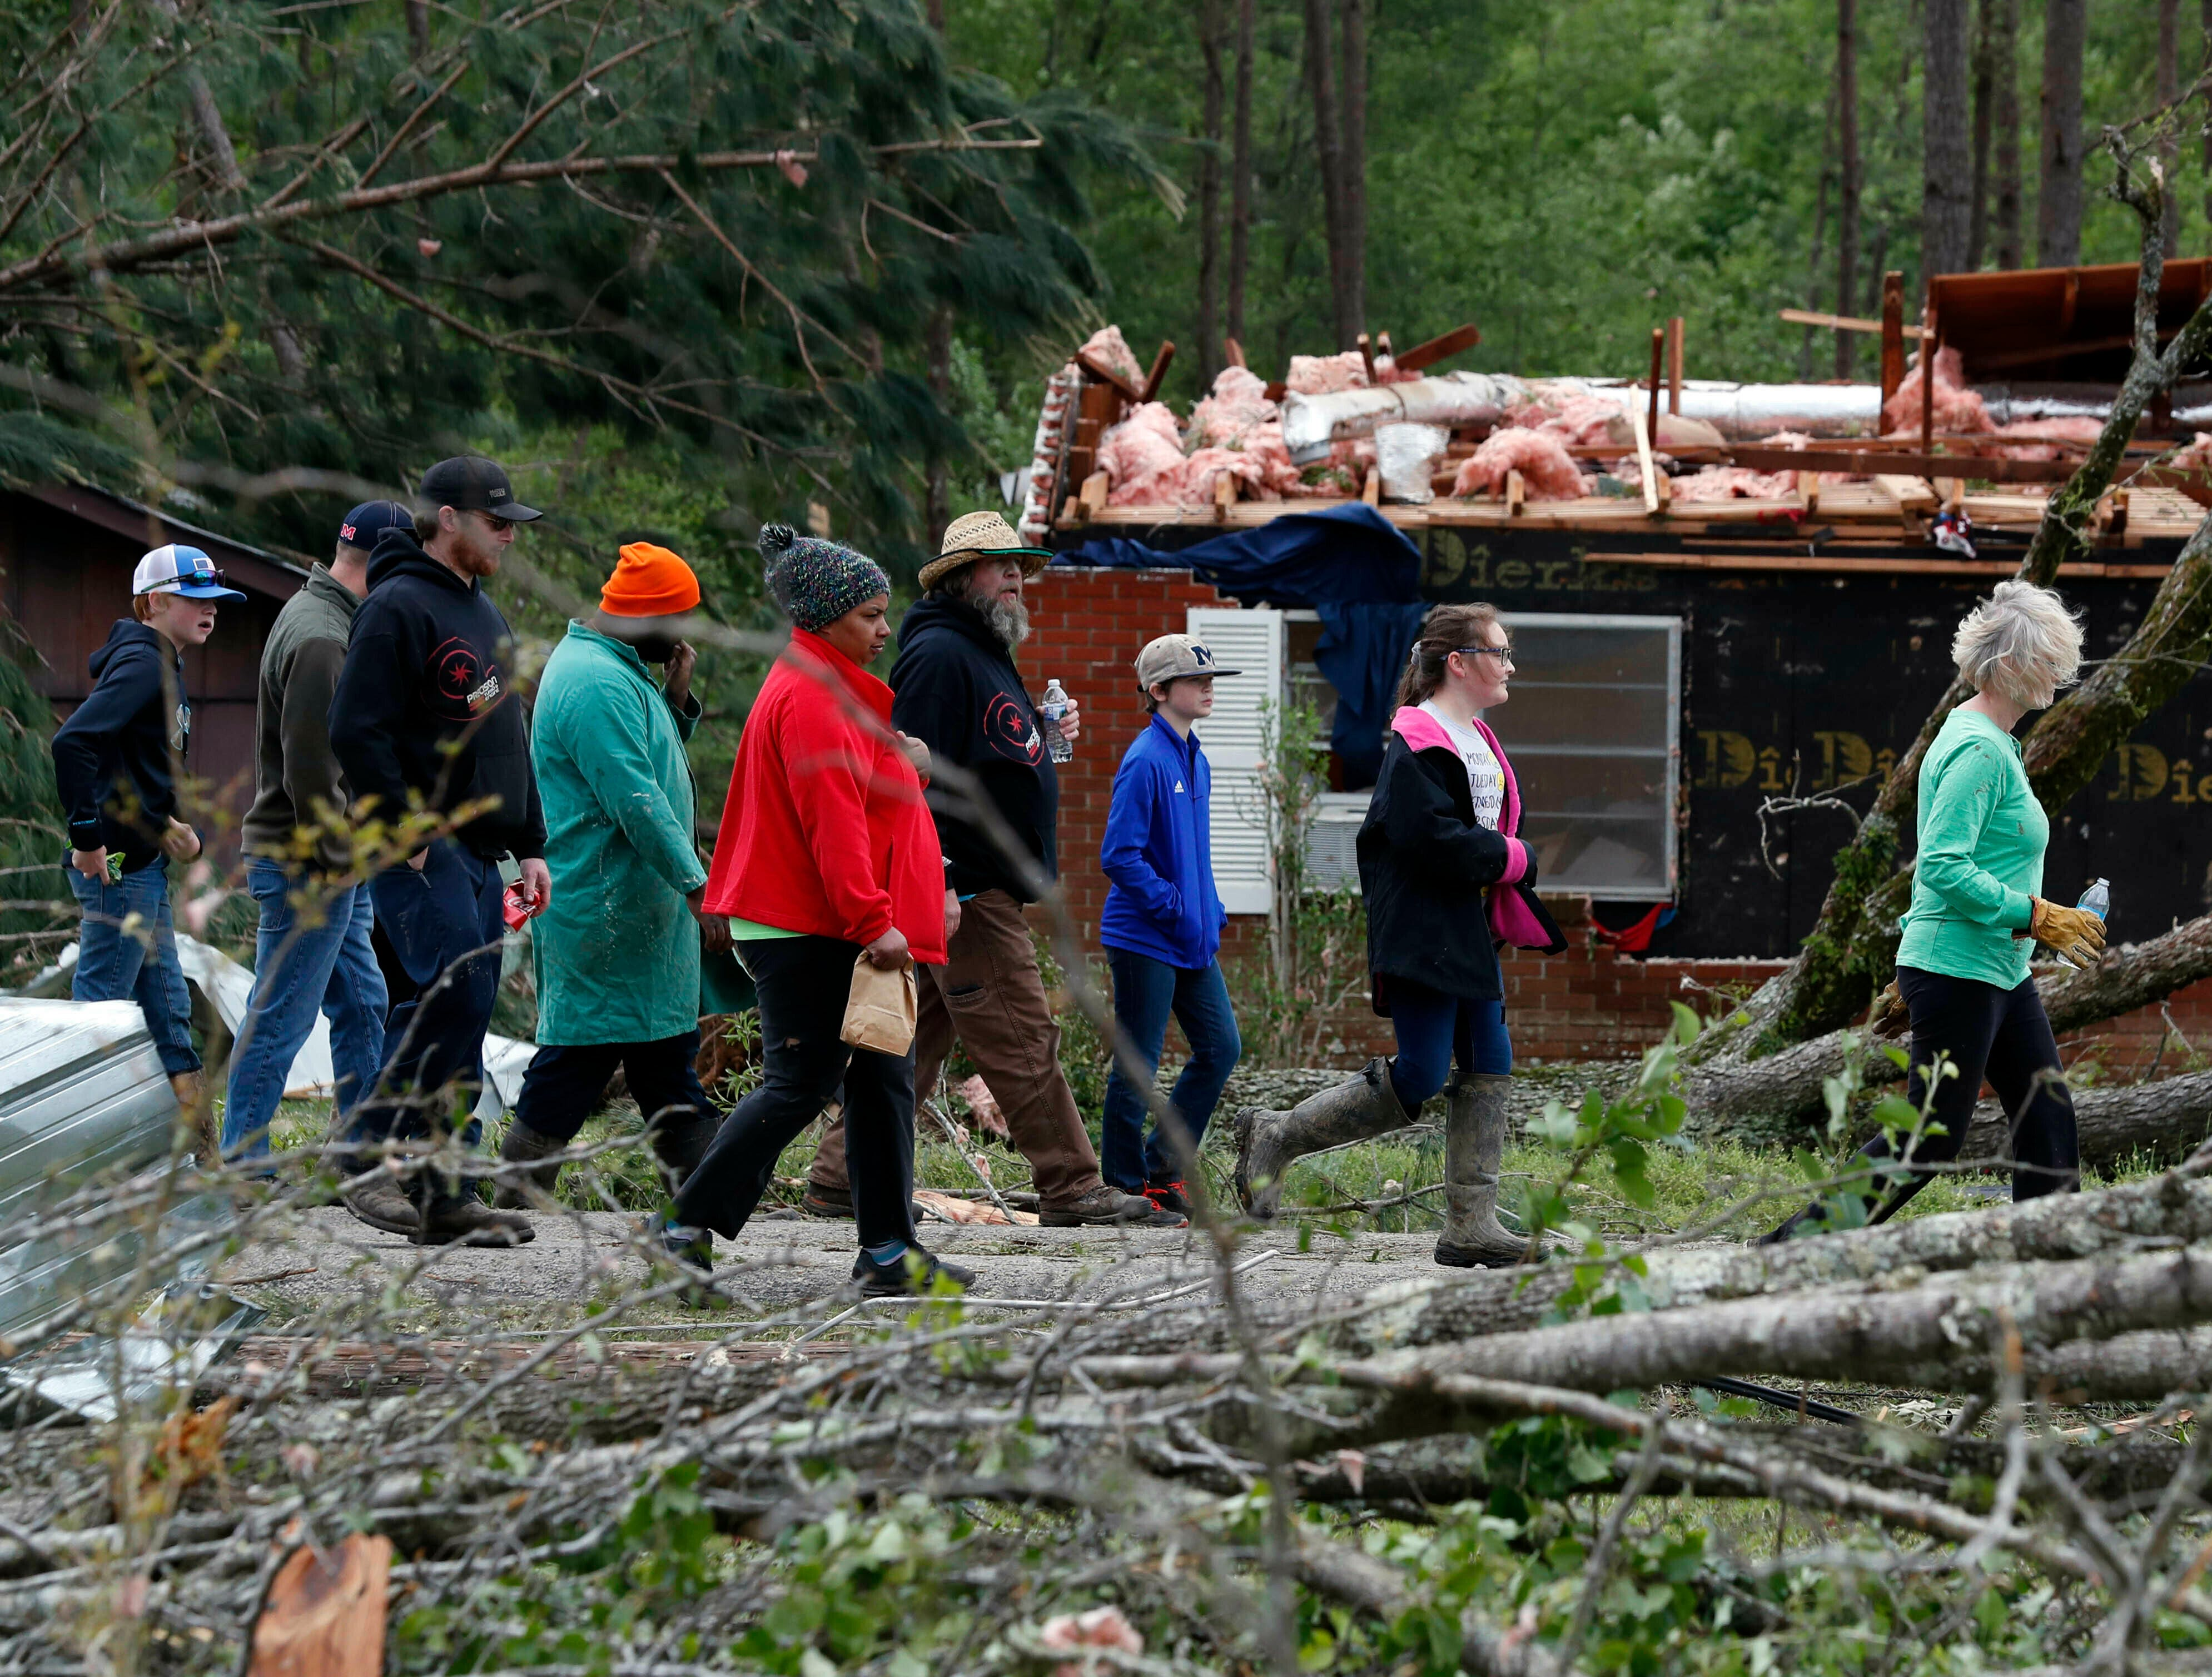 Morton, Miss., residents take a visual tour of their storm damaged neighborhood, Friday, April 19, 2019. Strong storms again roared across the South on Thursday, topping trees and leaving a variety of damage in Mississippi, Louisiana and Texas. (AP Photo/Rogelio V. Solis)